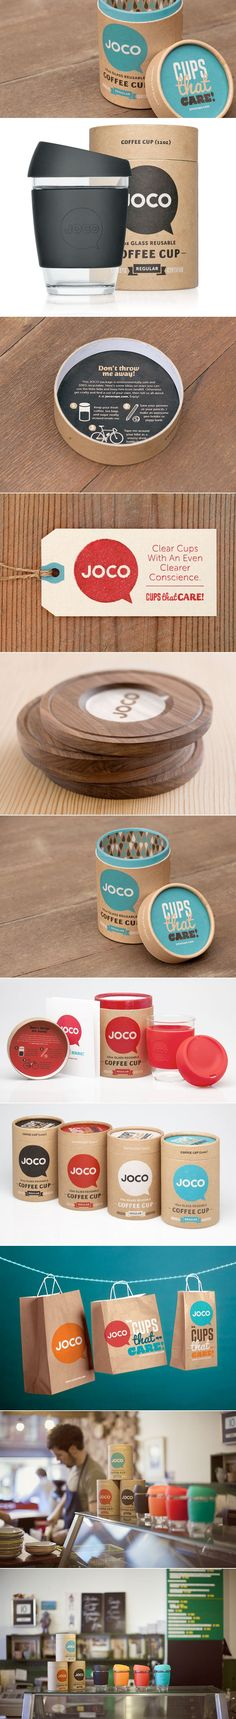 JOCO Coffee Cup — The Dieline | Packaging & Branding Design & Innovation News